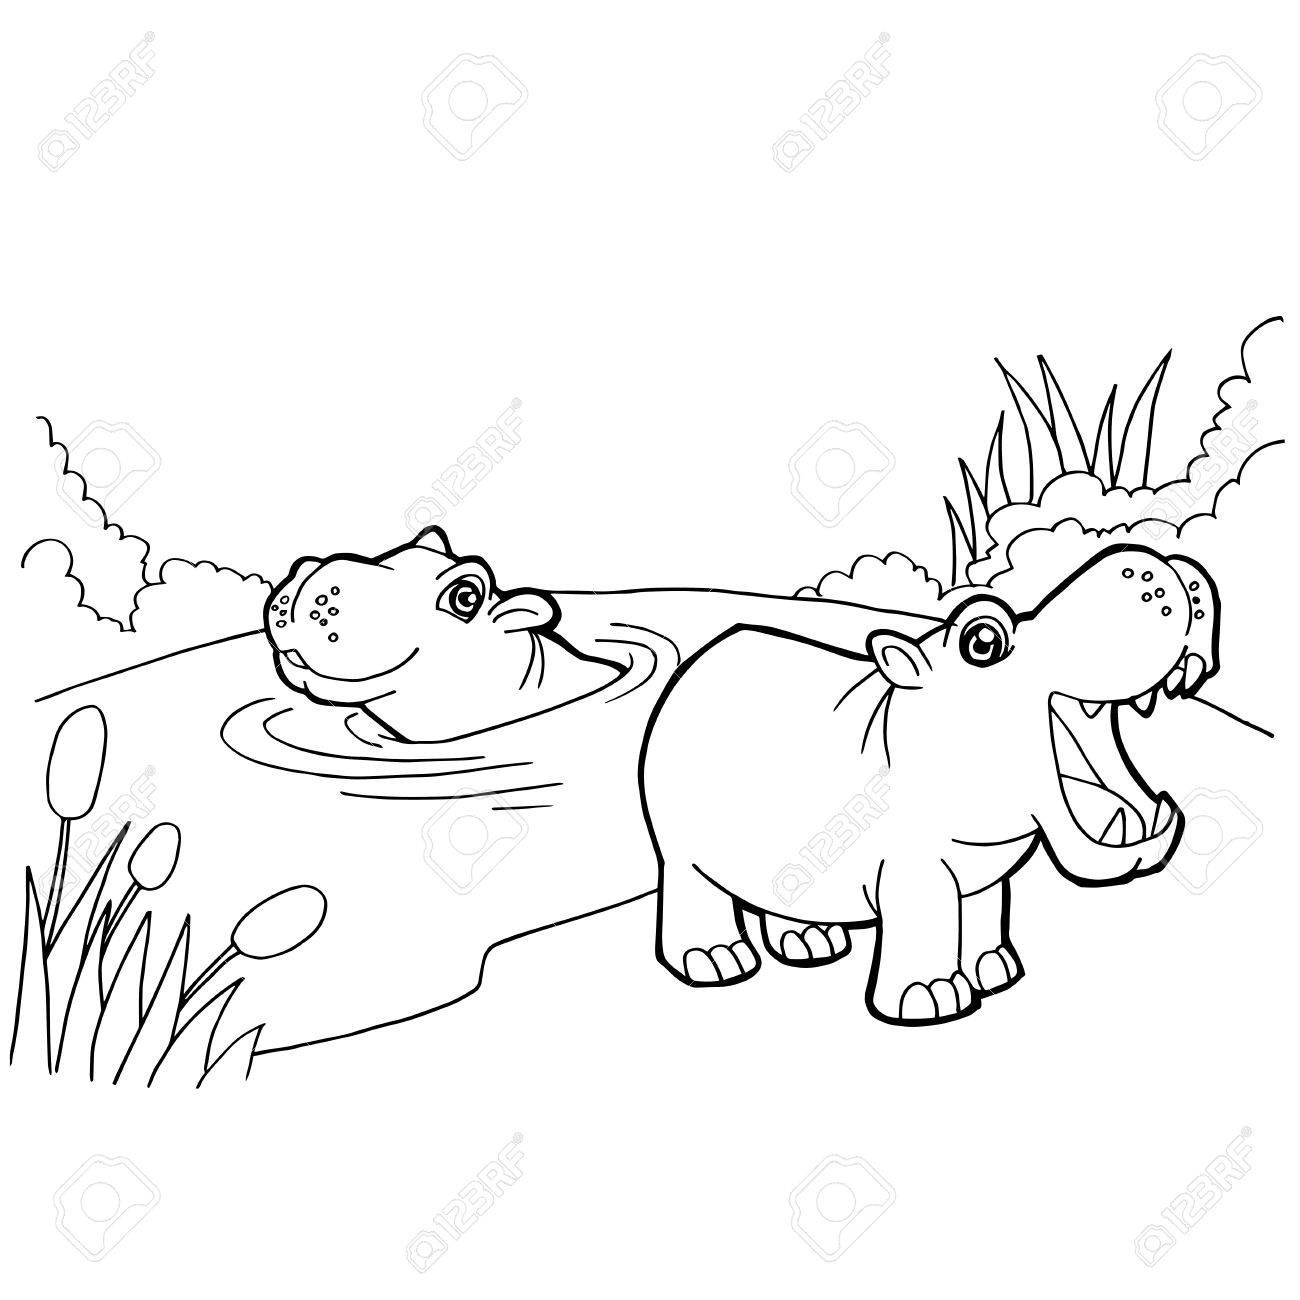 Hippopotamus Cartoon Coloring Pages Vector Royalty Free Cliparts